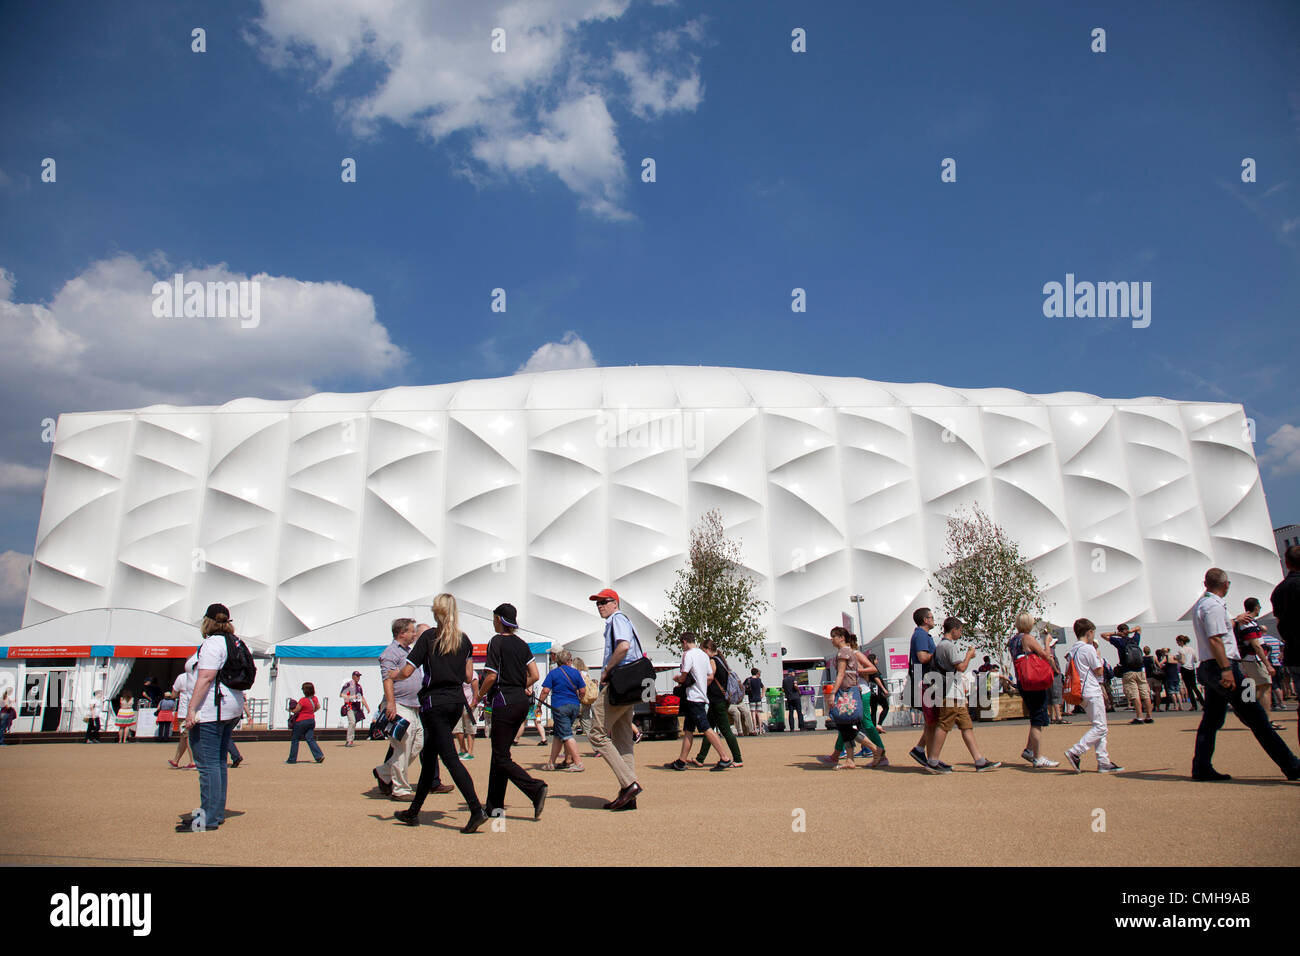 London, UK. Thursday 9th August 2012. London 2012 Olympic Park in Stratford, East London. The Basketball Arena. - Stock Image